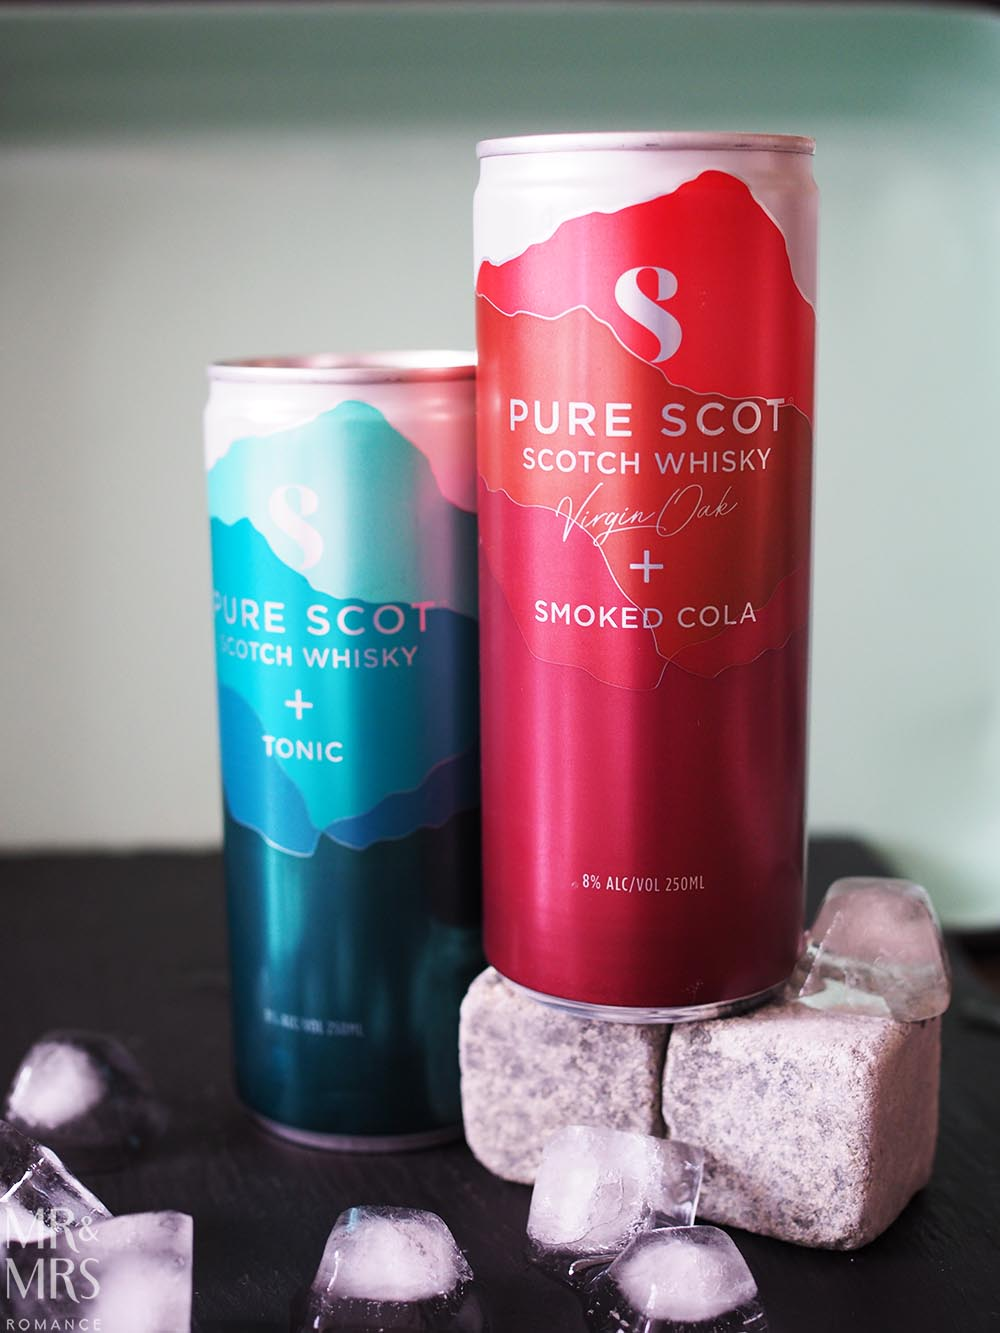 New drinks for summer - Pure Scot RTDs